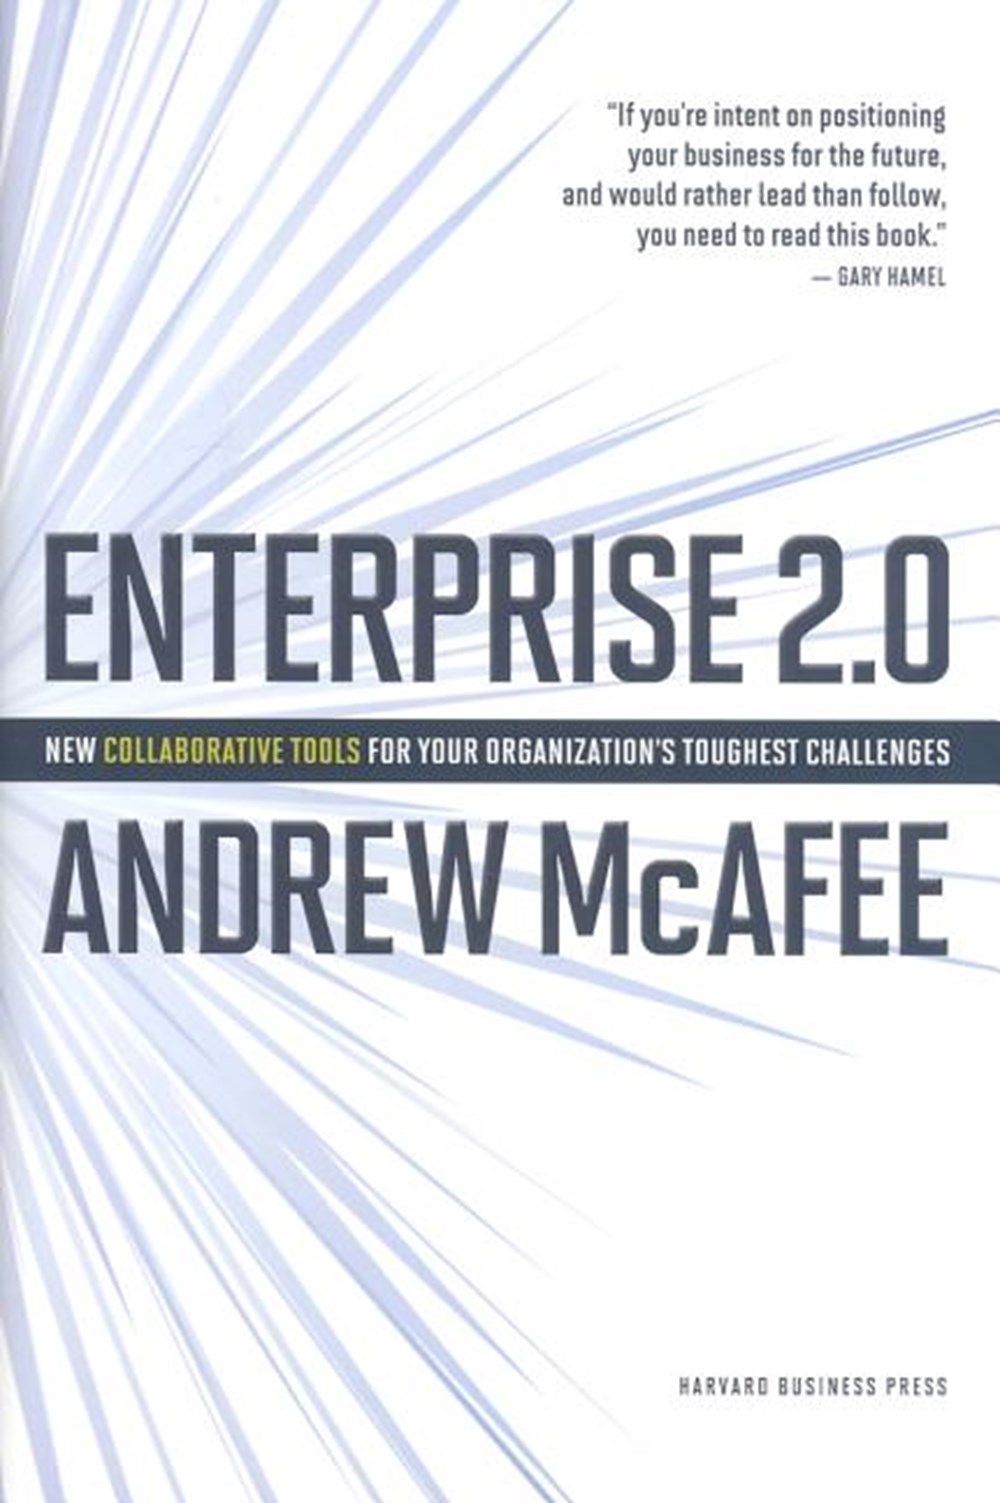 Enterprise 2.0 New Collaborative Tools for Your Organizations Toughest Challenges